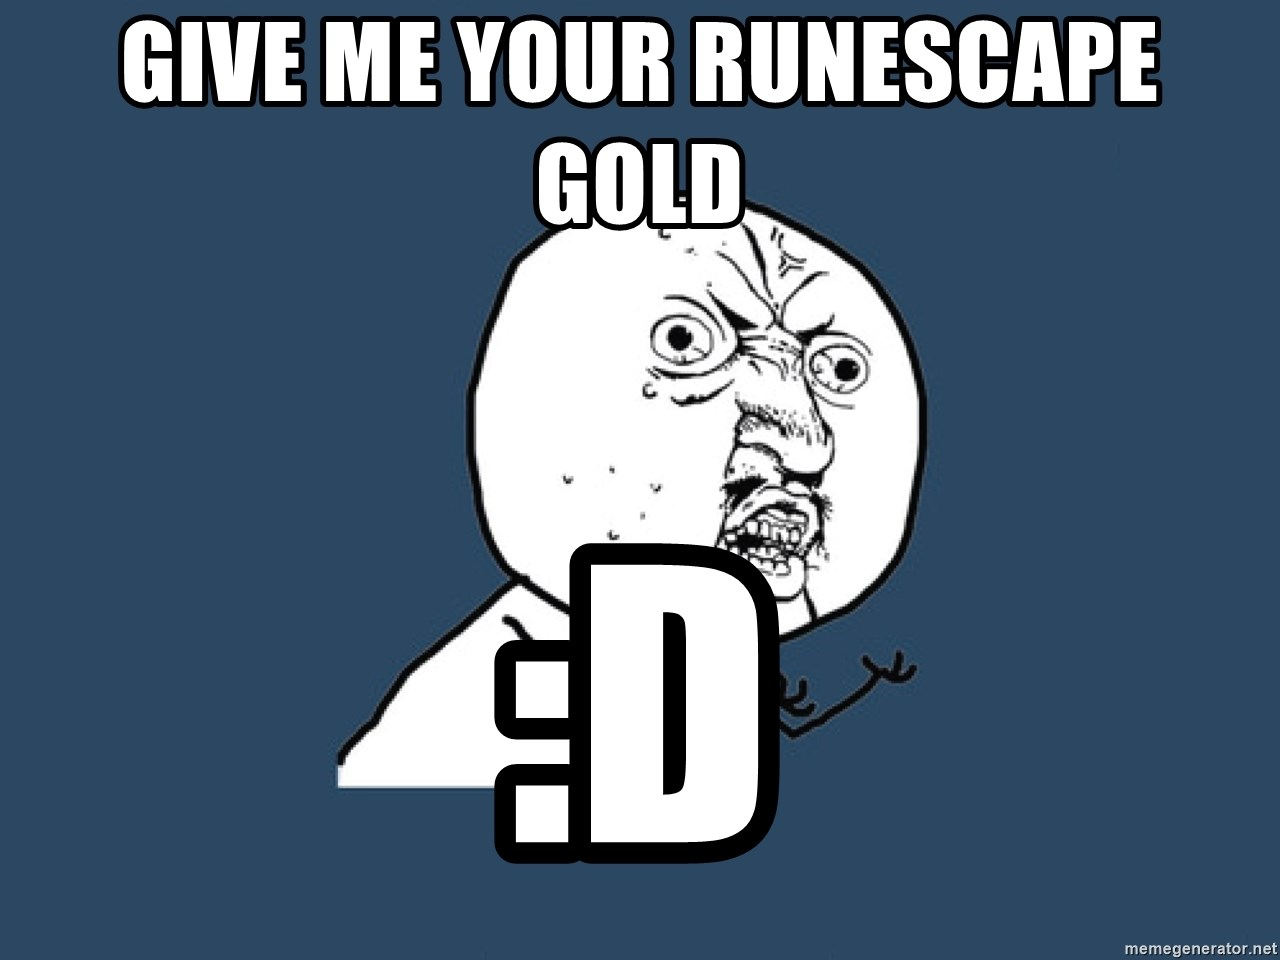 Y U No - Give me your runescape gold :D